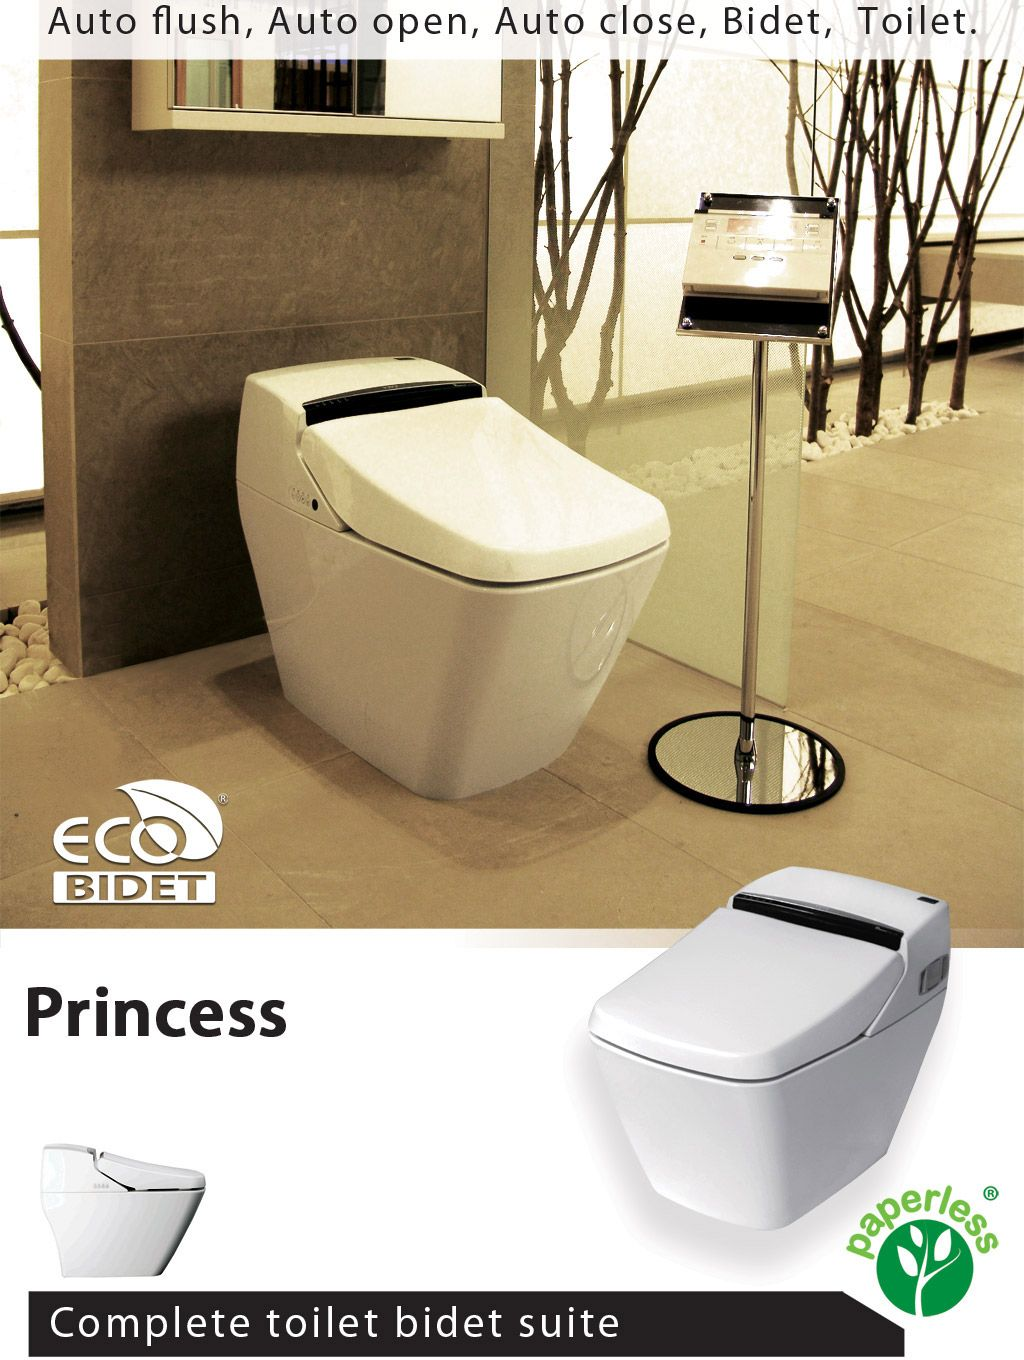 Incredible The Eco Bidet Princess Prince Are The Ultimate Toilet Pdpeps Interior Chair Design Pdpepsorg